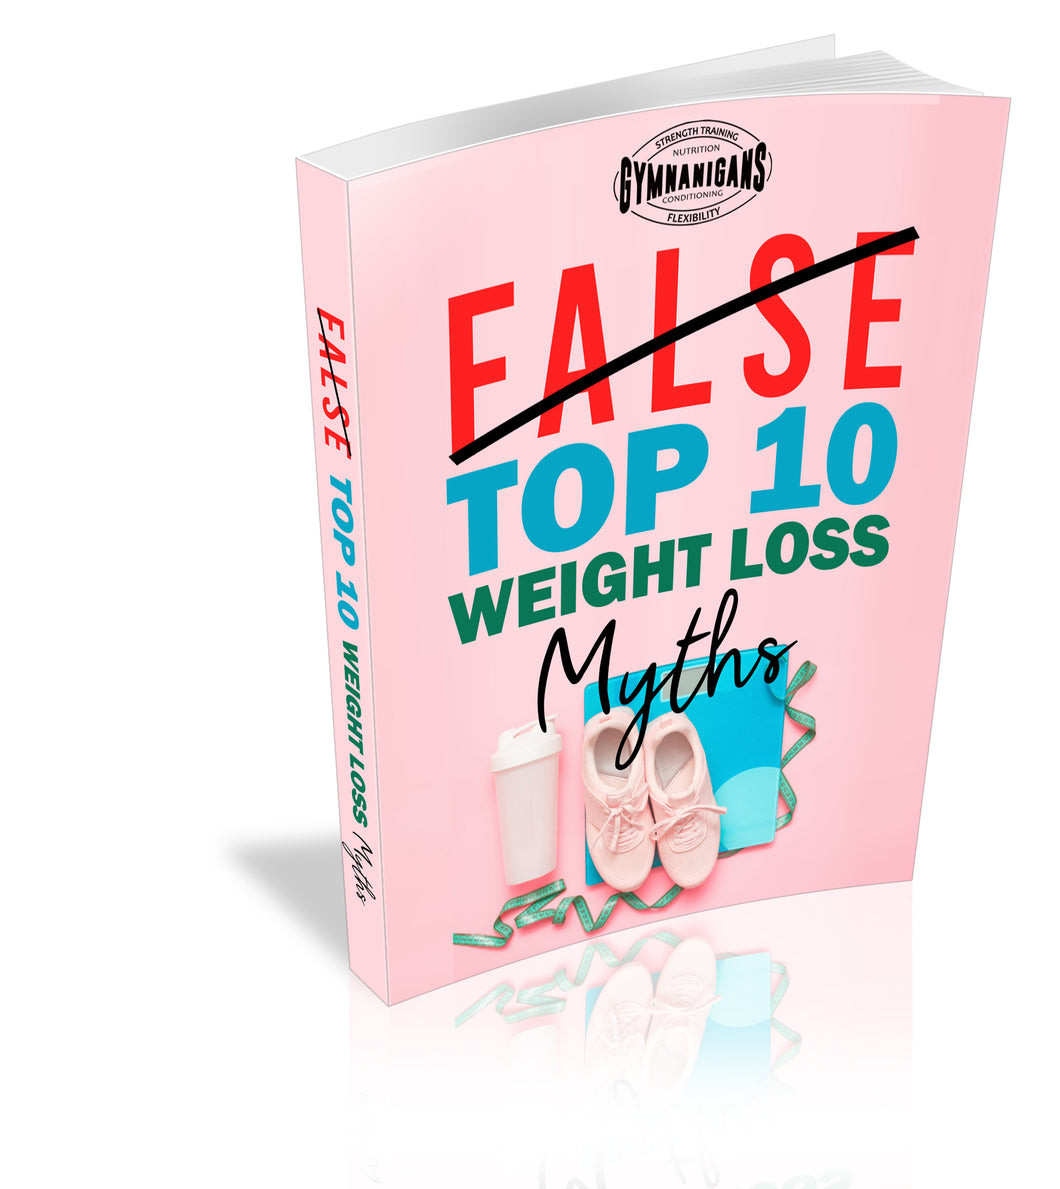 False Top 10 Weight Loss Myths (Digital Download)